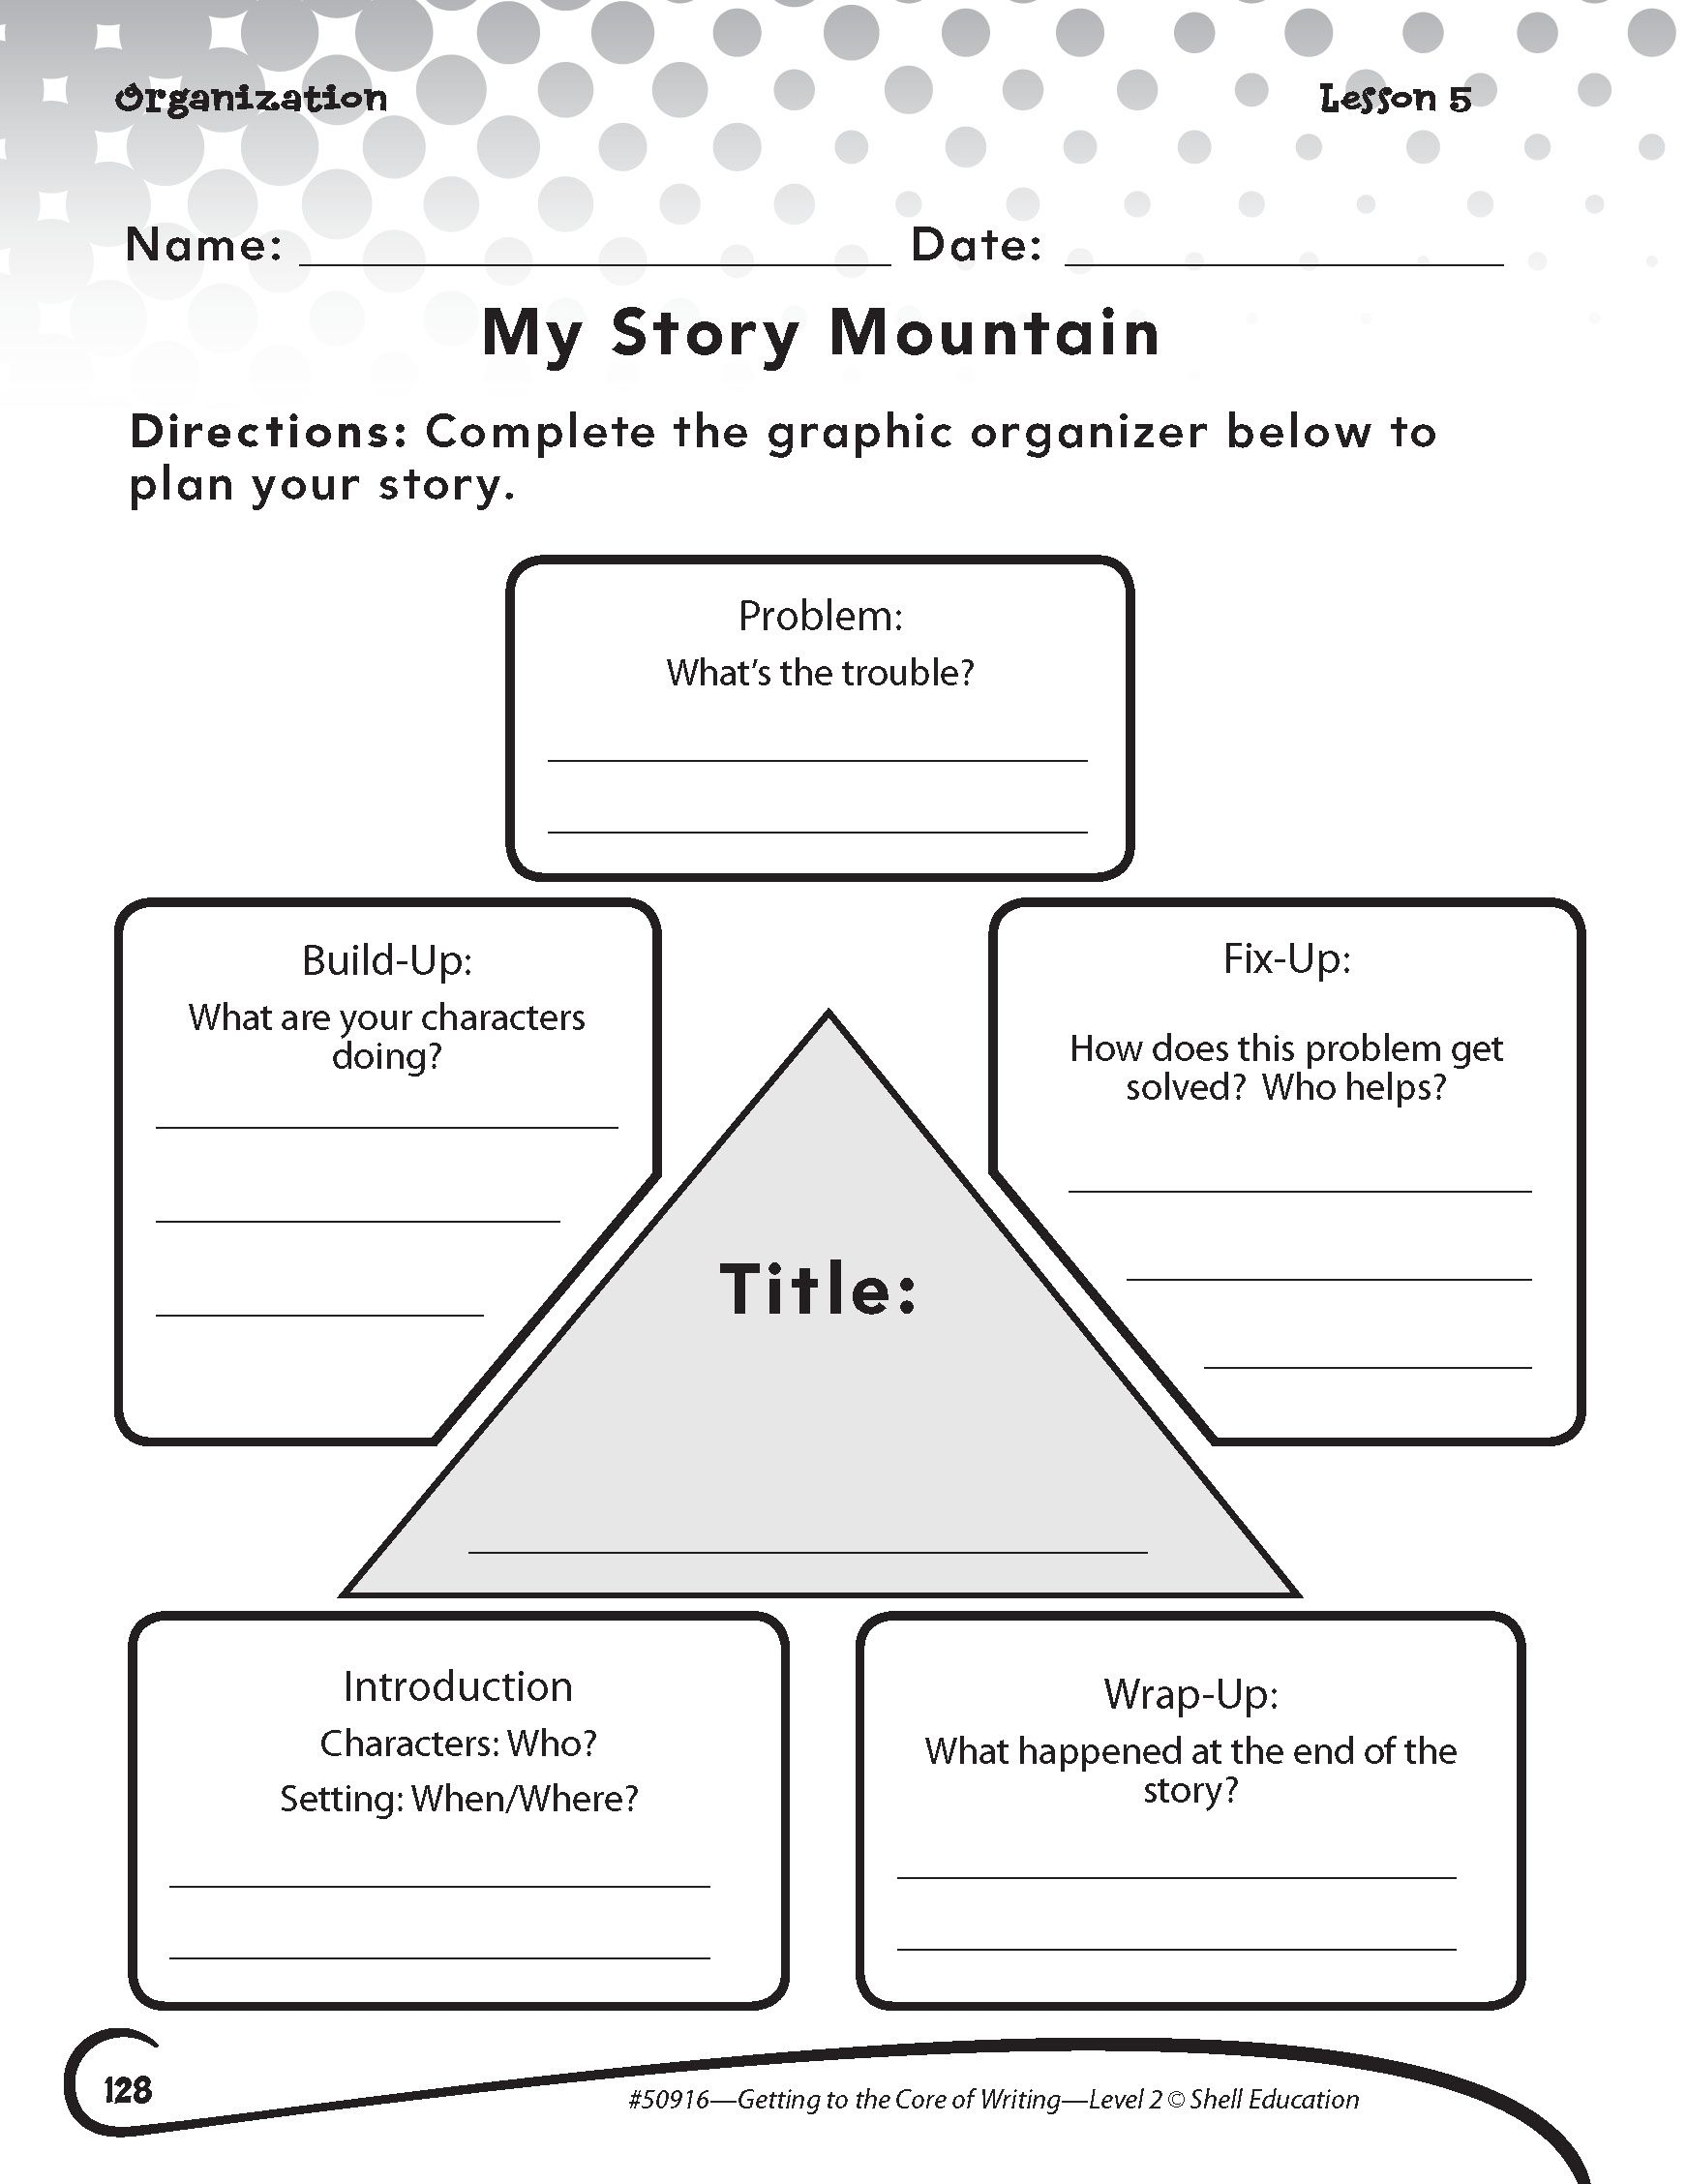 My Story Mountain Activity From Getting To The Core Of